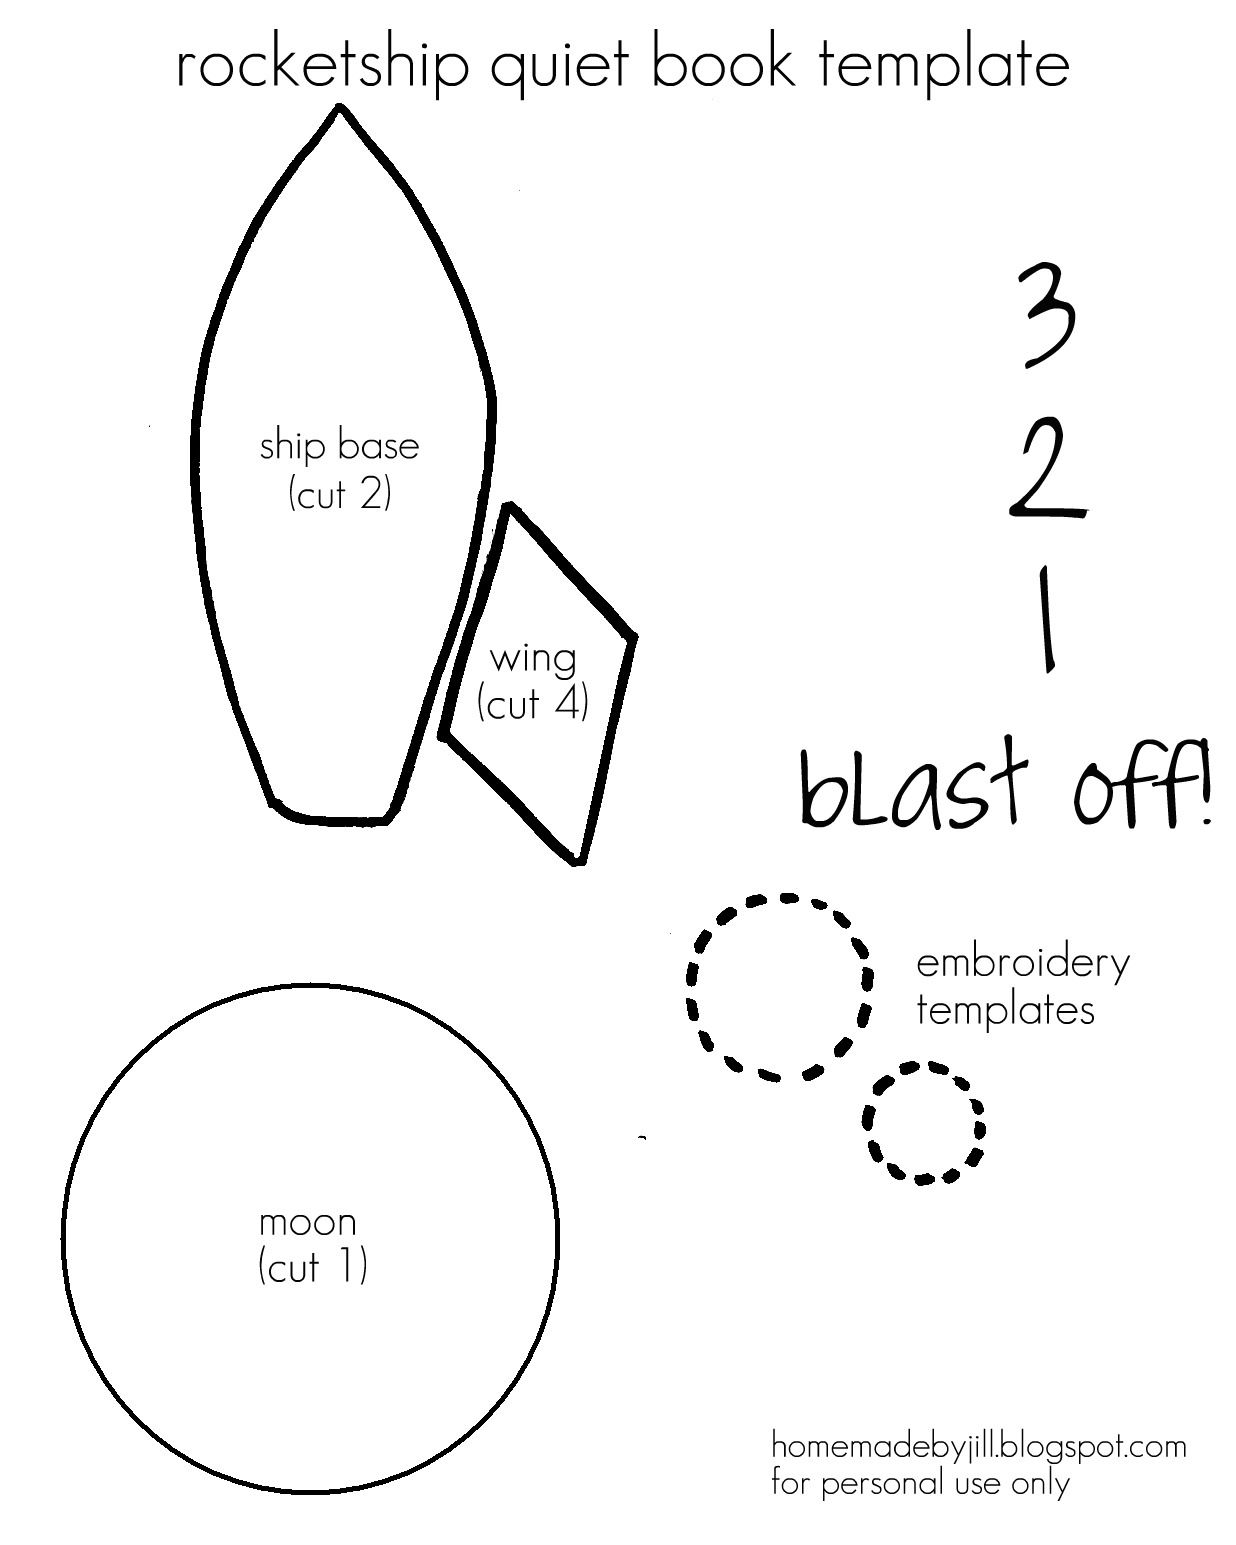 below are some templates from my quiet book print them out as